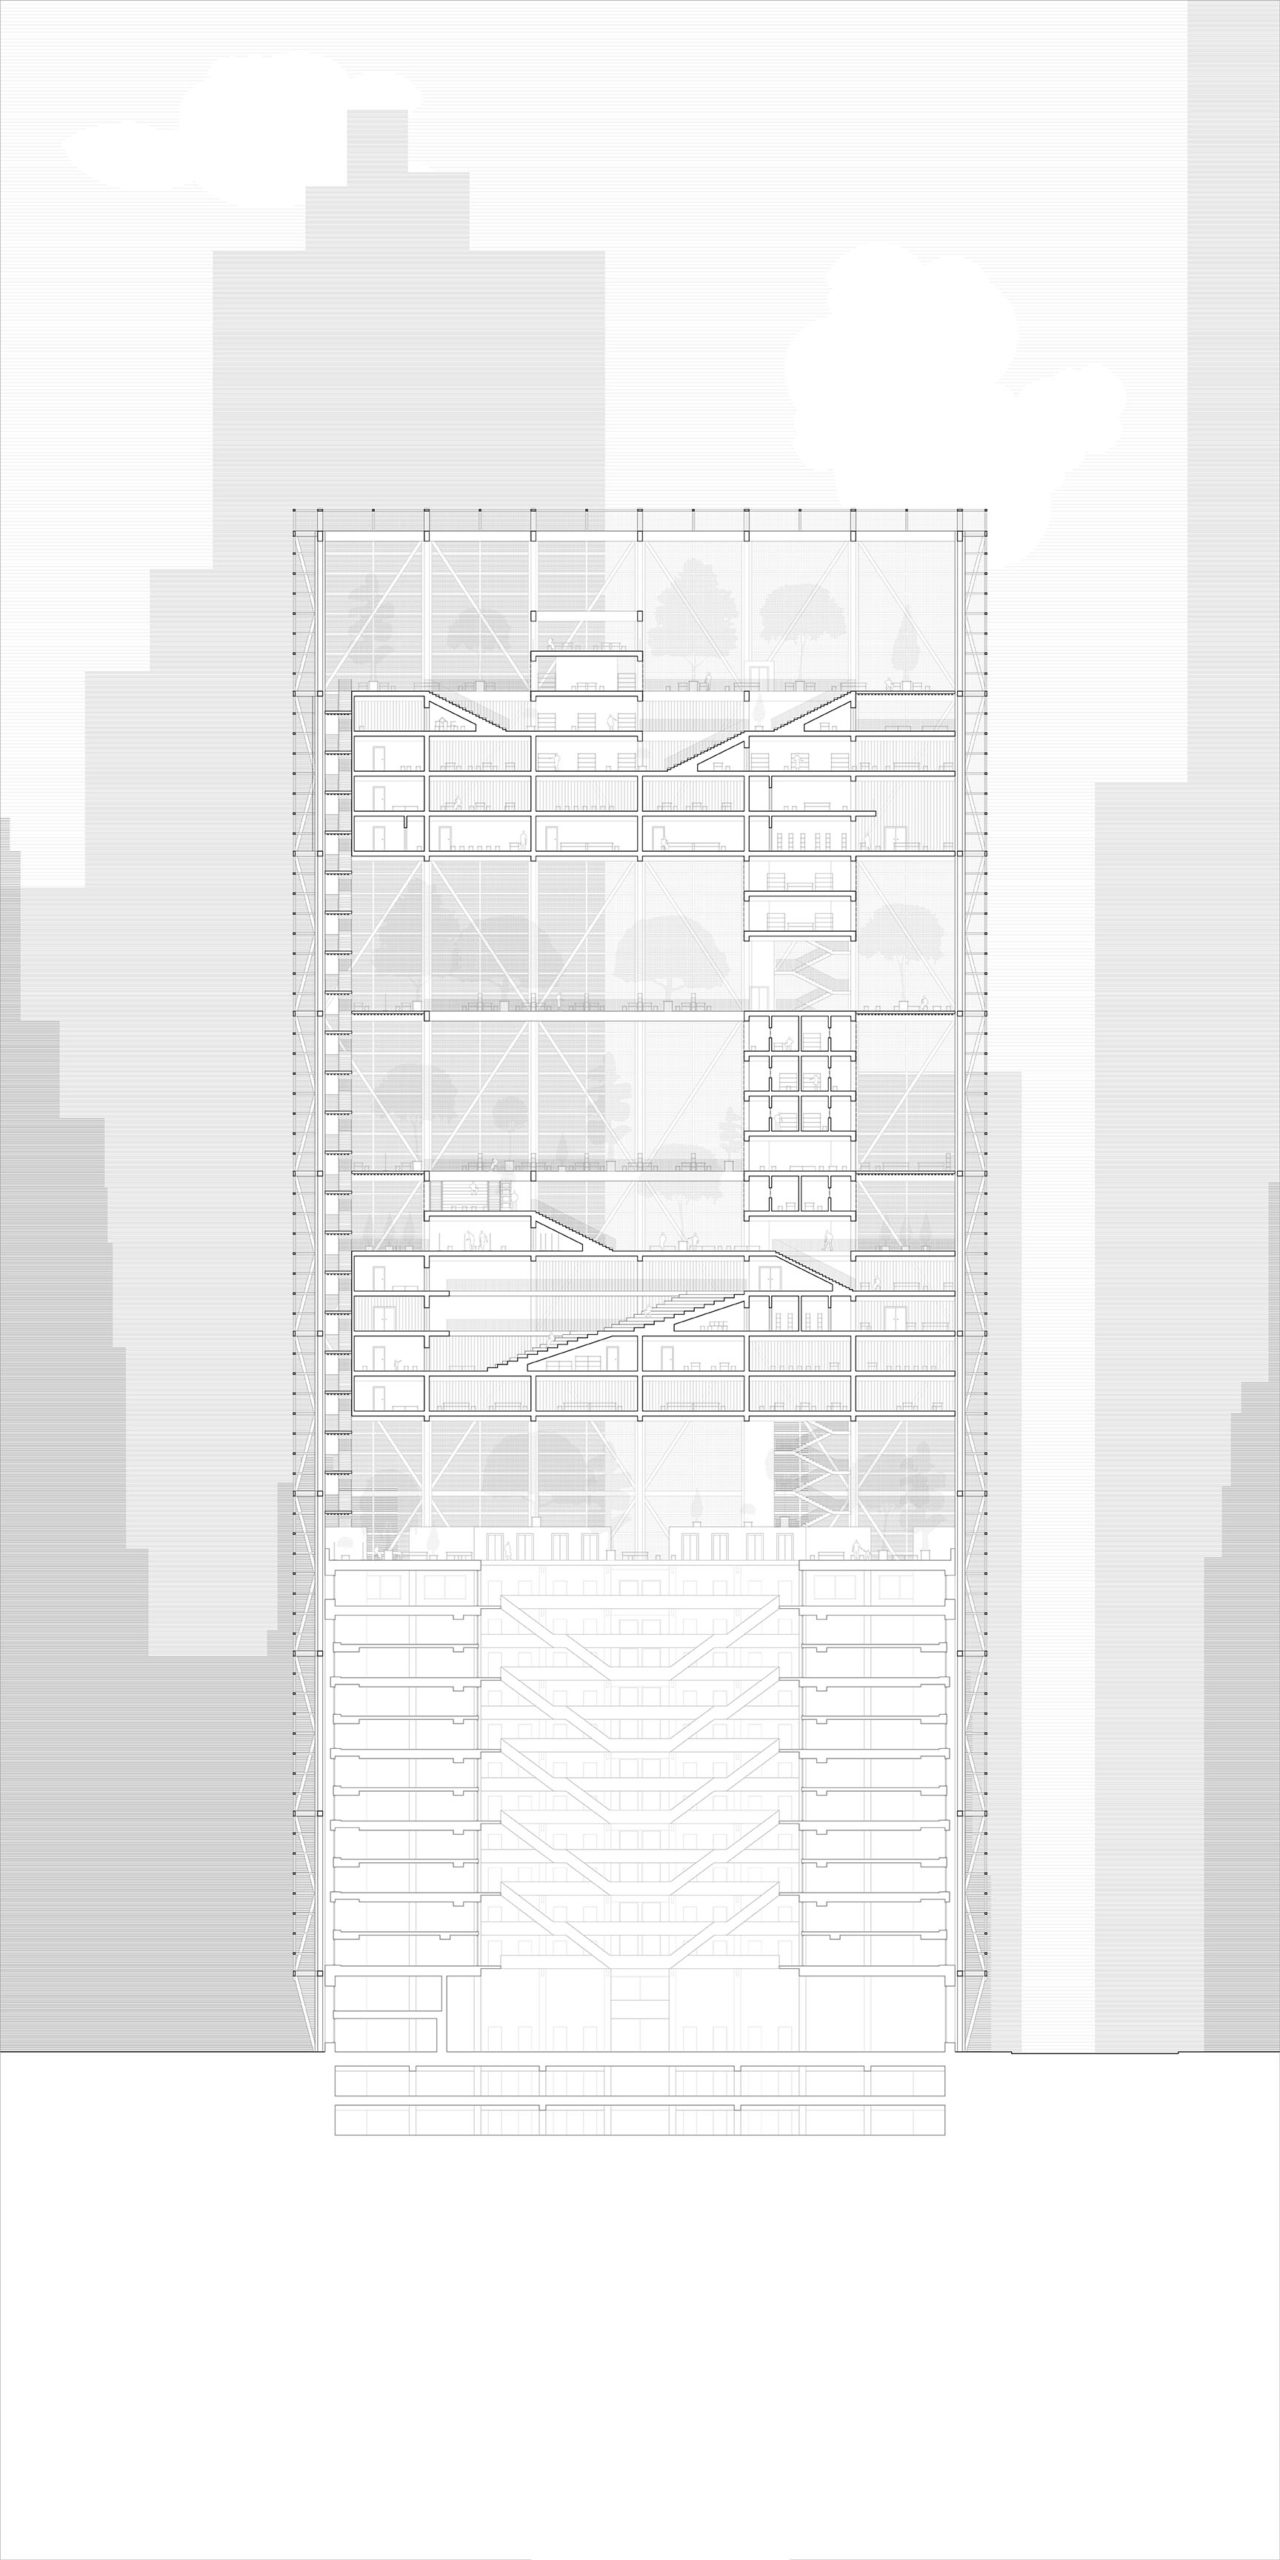 Sectional drawing of building